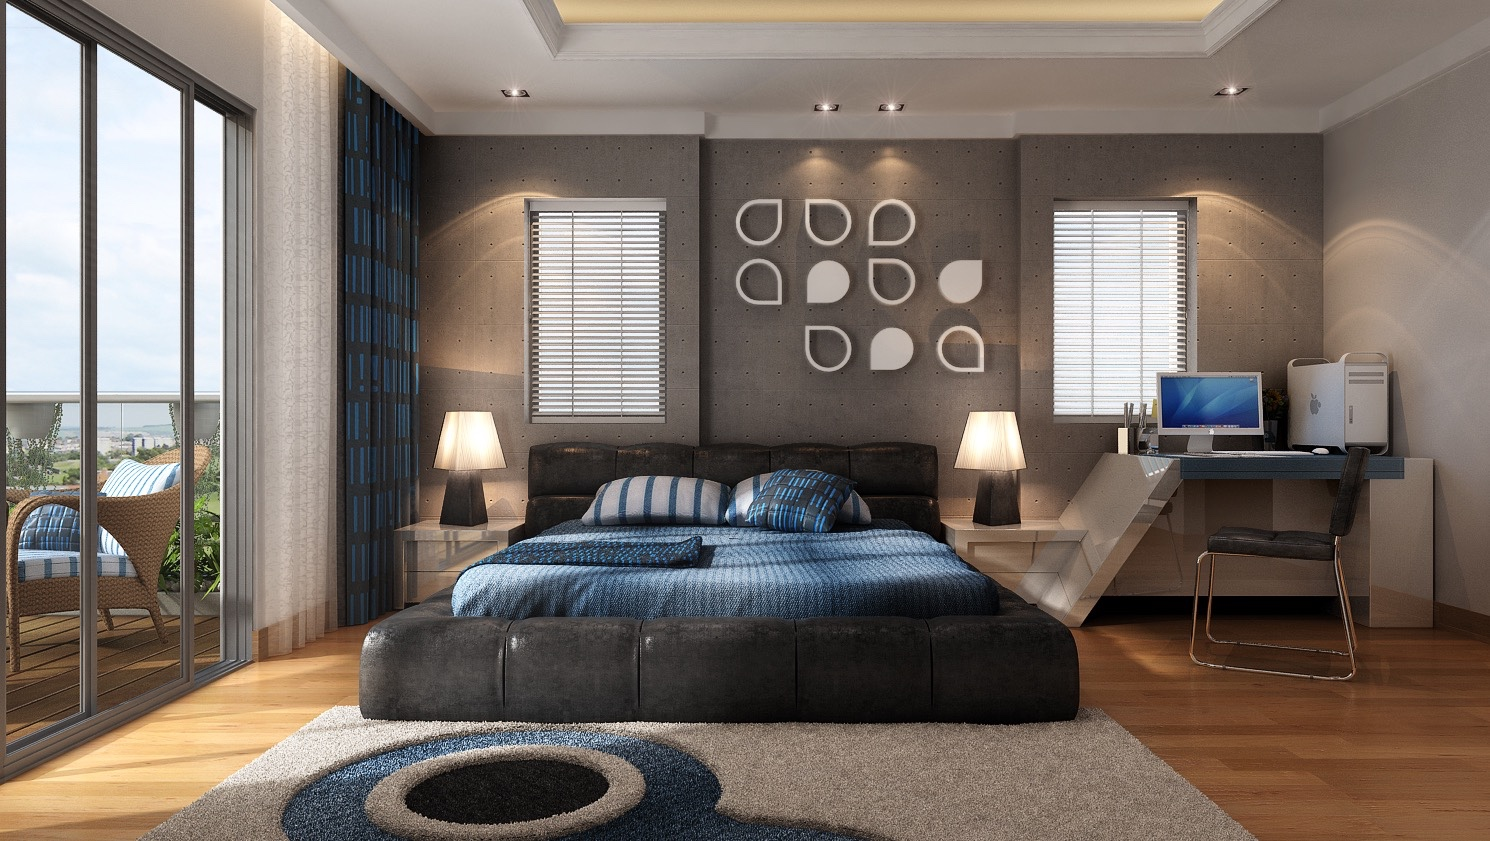 Simple bedroom designs ideas - Simple Bedroom Designs Ideas 26